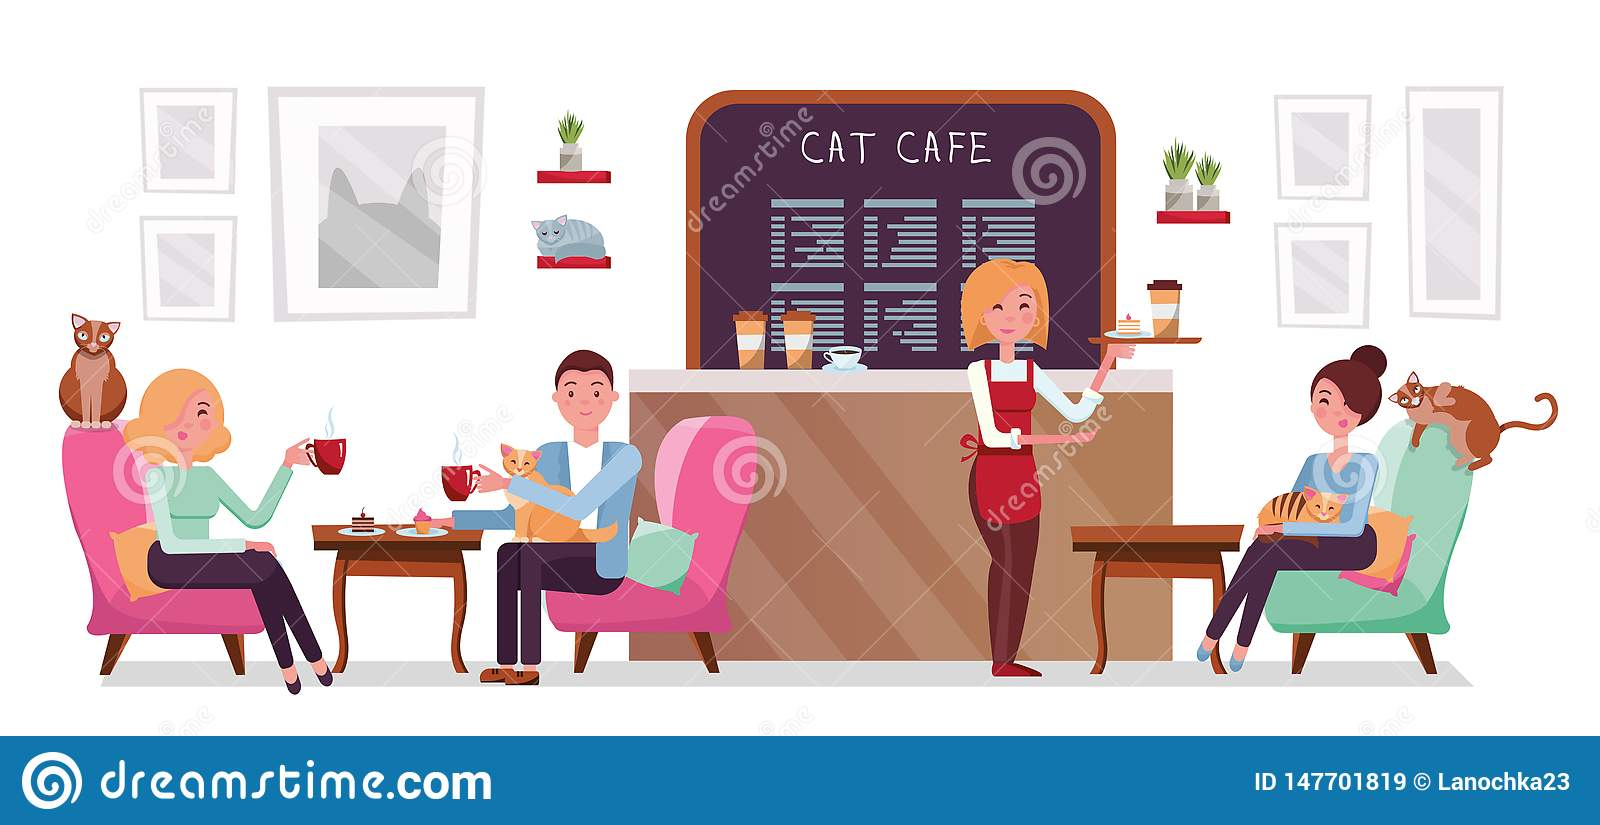 Cat Cafe Shop People Single And Couple Relaxing With Kitties Place Interior To Meet Have A Rest With Pets Waitress Tray With Stock Illustration Illustration Of Business Design 147701819